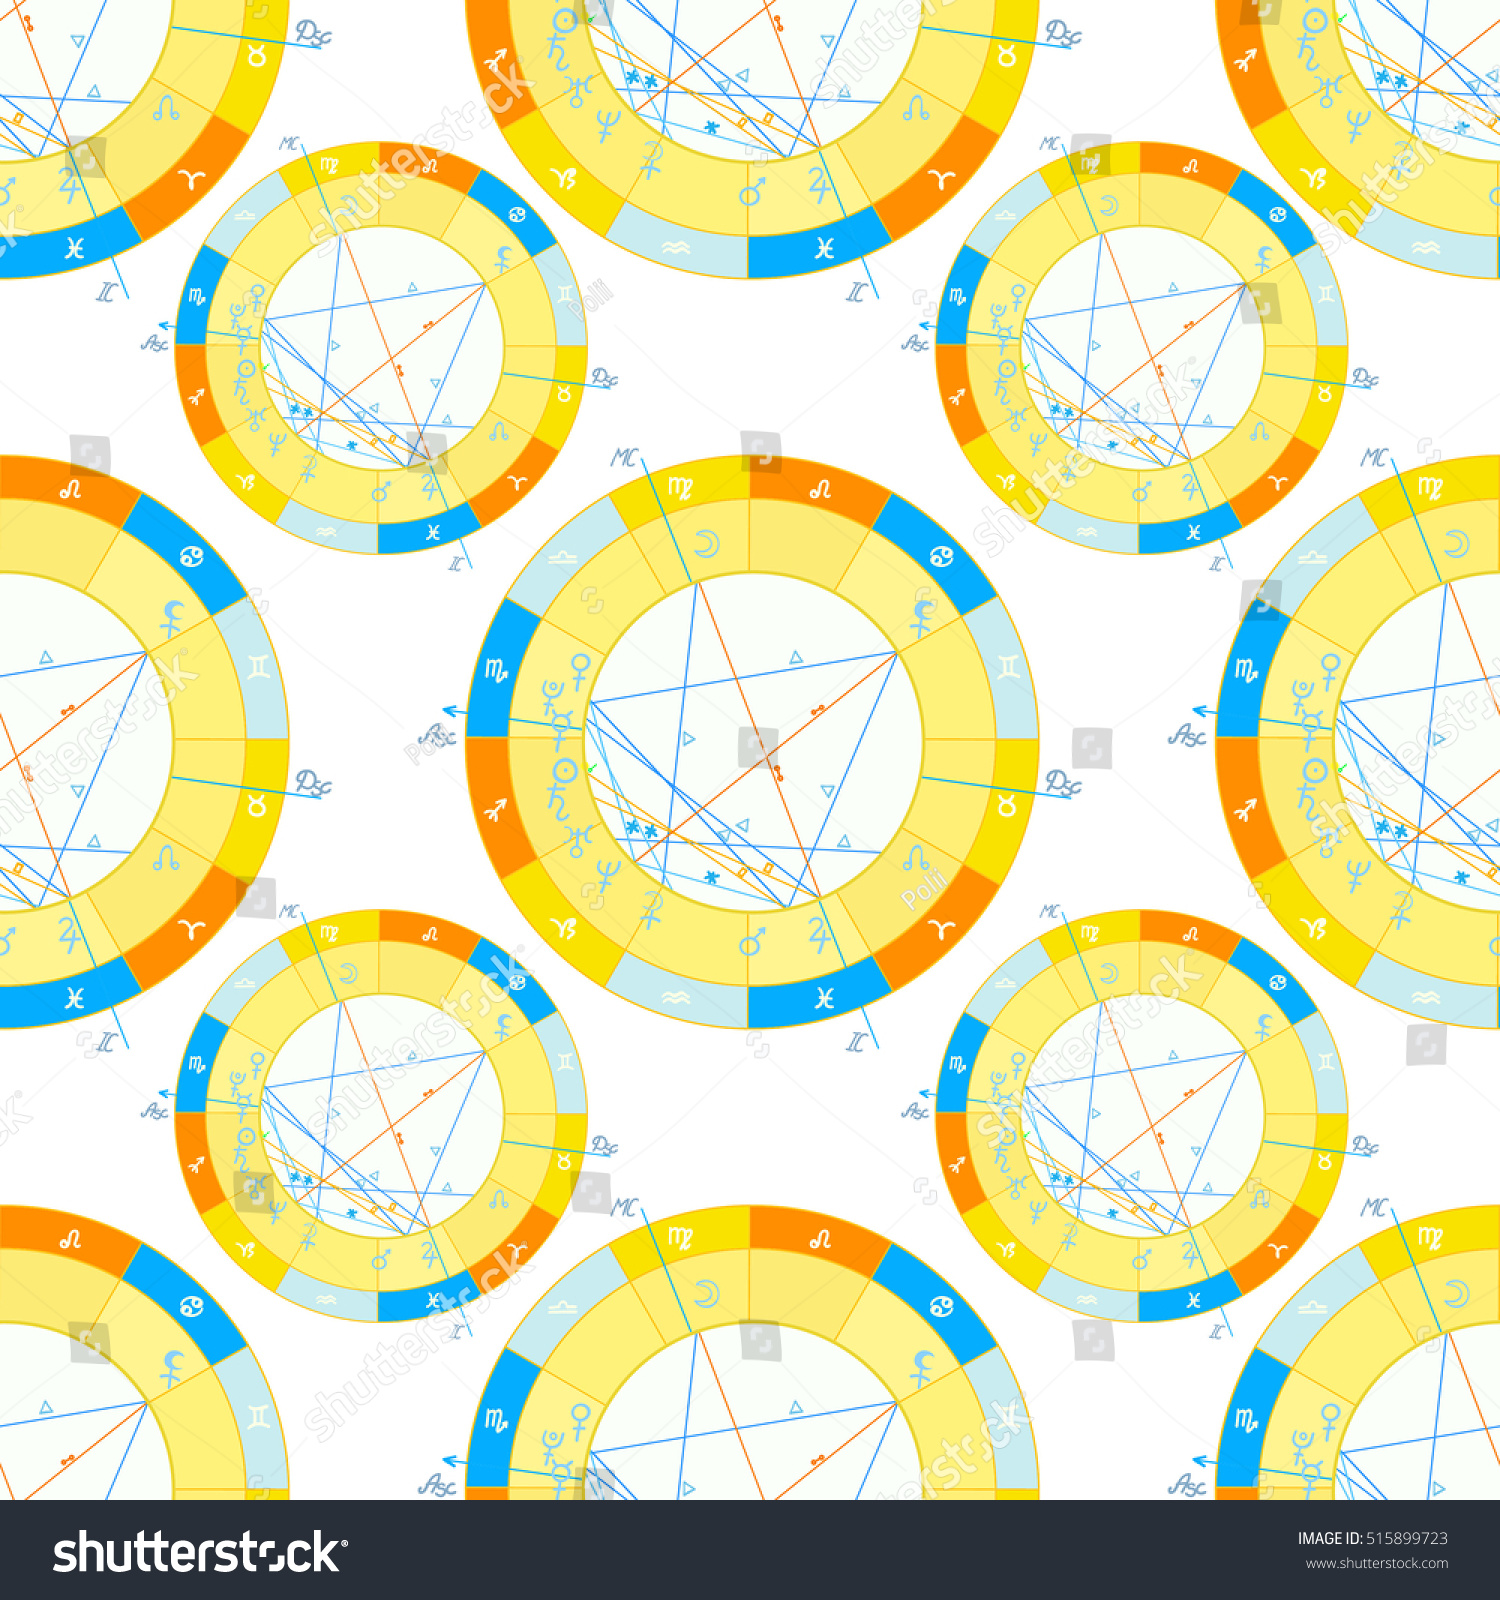 Seamless pattern natal astrological chart zodiac stock vector seamless pattern of natal astrological chart zodiac signs vector illustration nvjuhfo Image collections